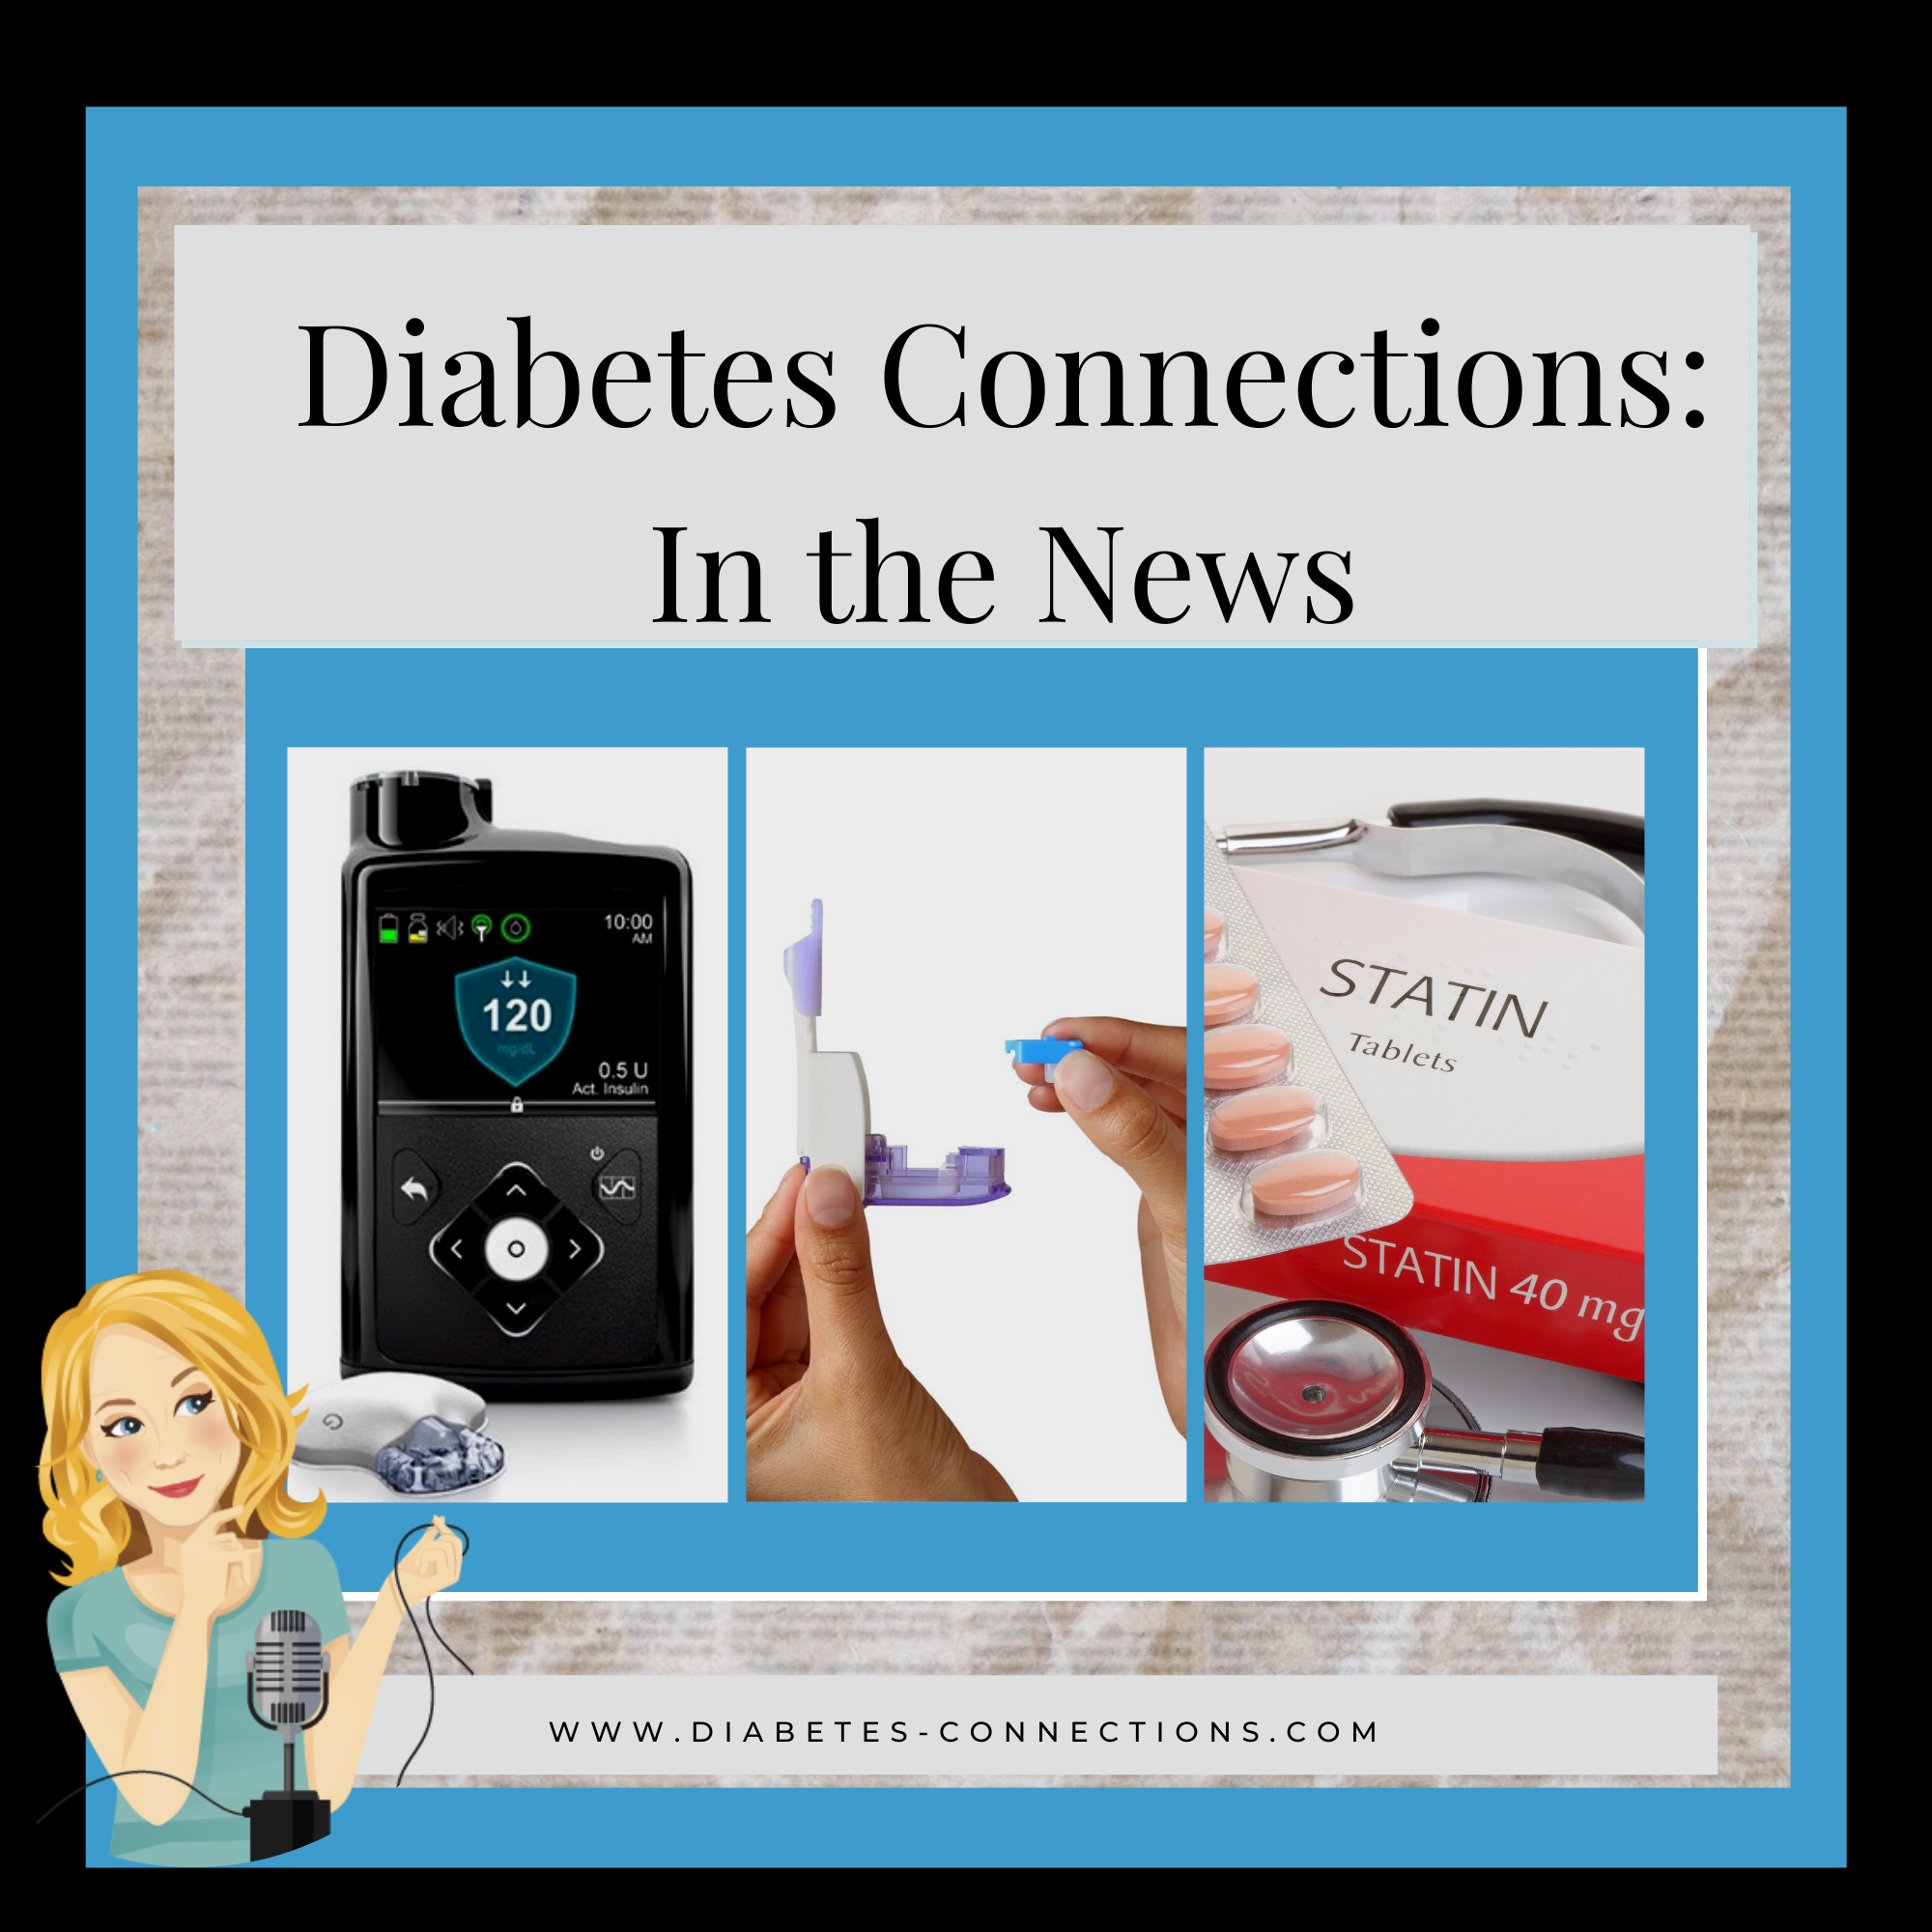 in the news logo with a Medtronic pump, Afrezza insulin and statin medicine pictured